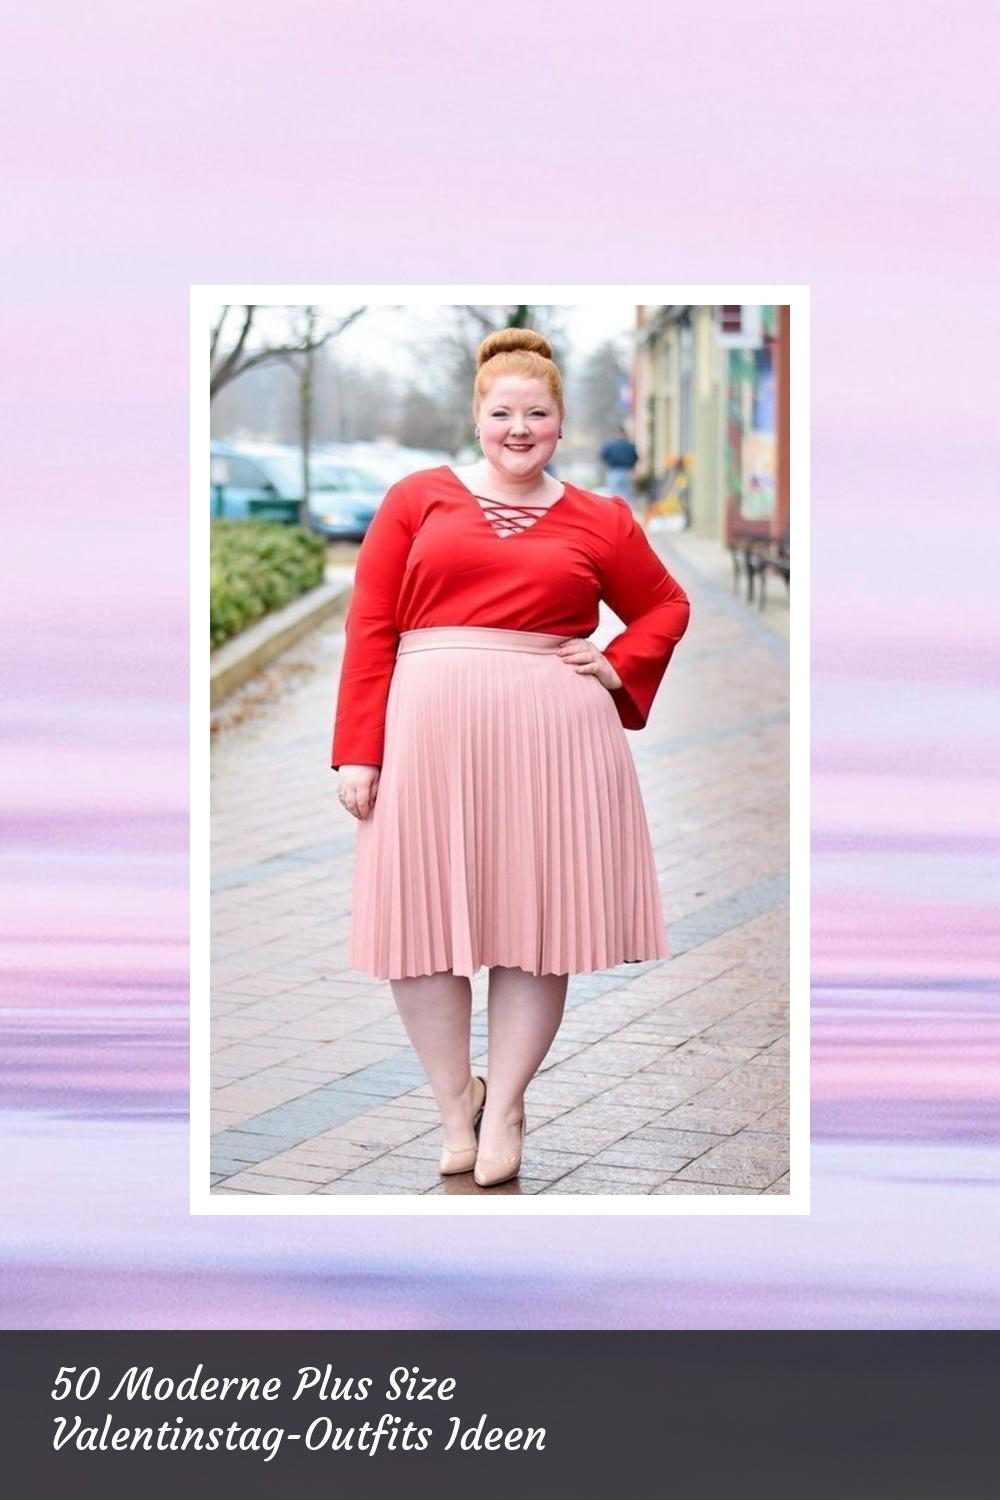 50 Moderne Plus Size Valentinstag-Outfits Ideen 11